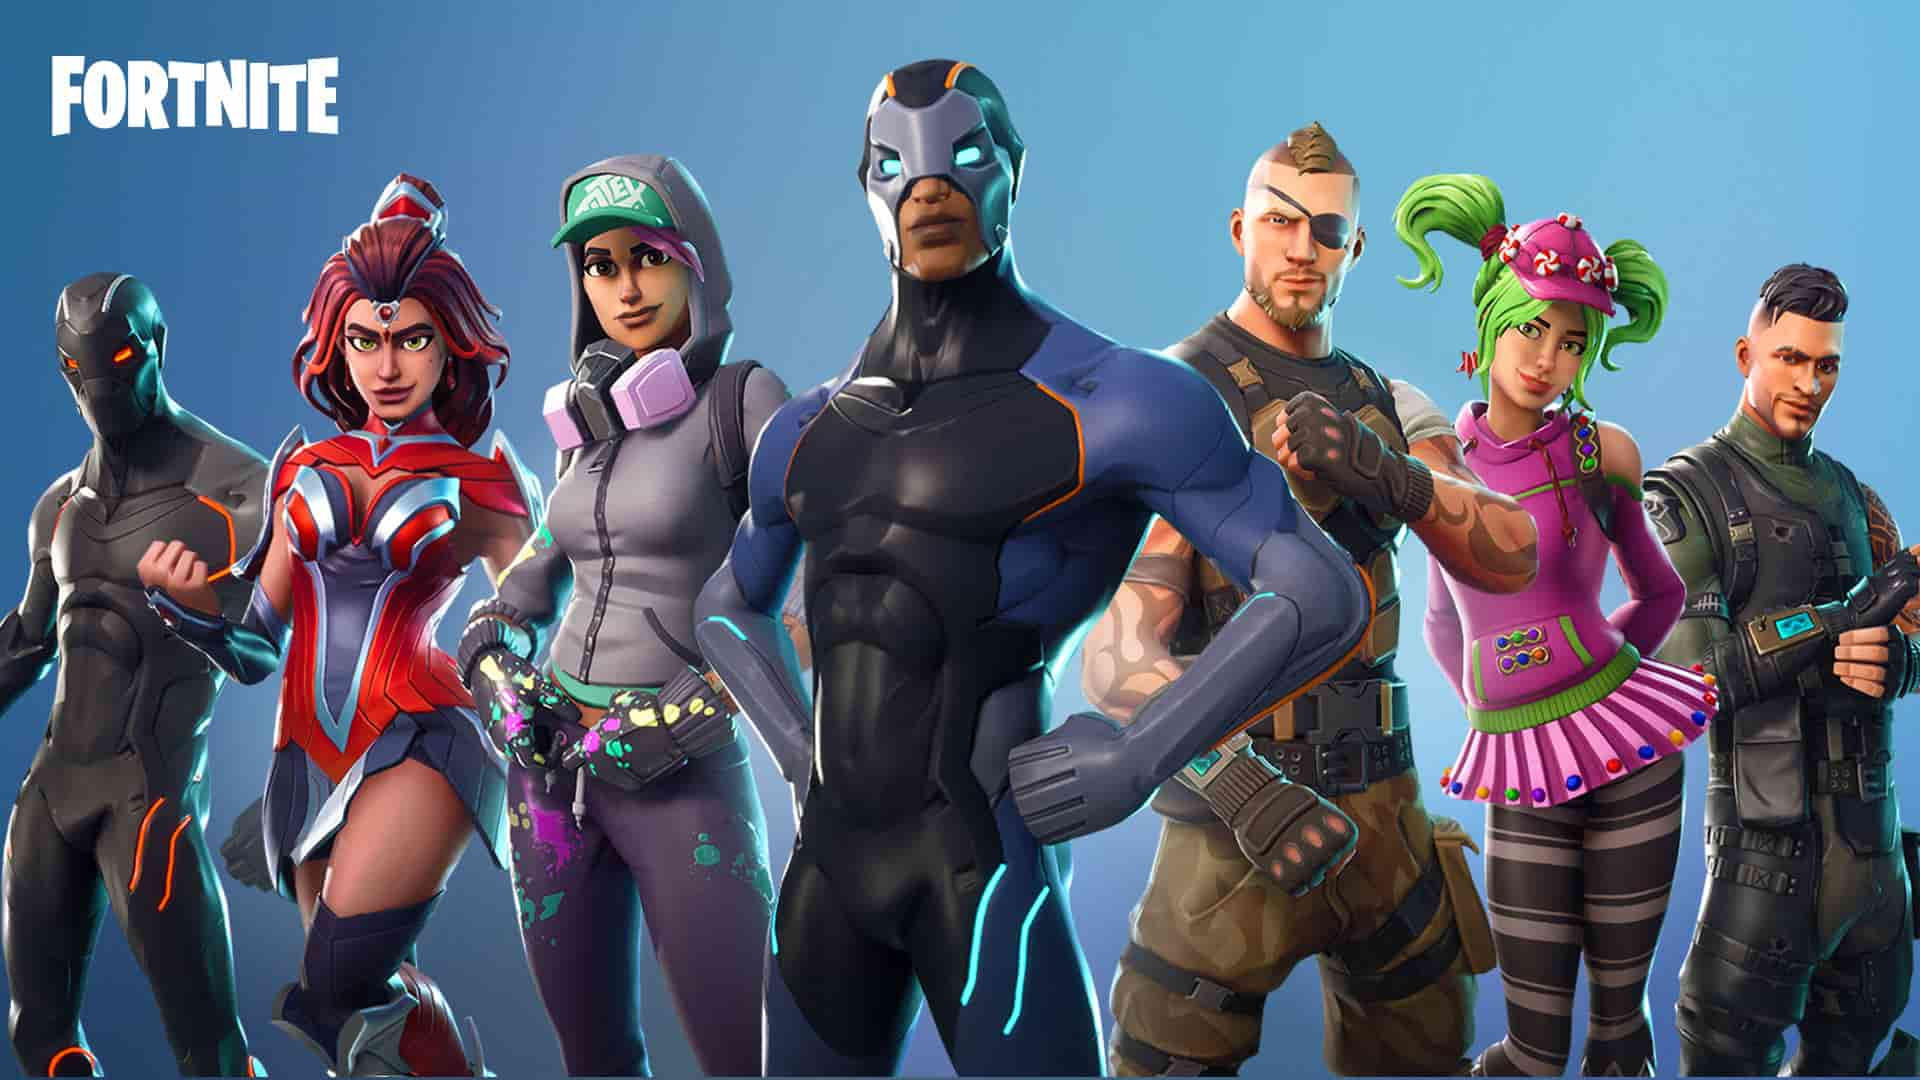 Fortnite 4.2 Update Patch Notes: New Burst Rifle, Quad Launcher & More